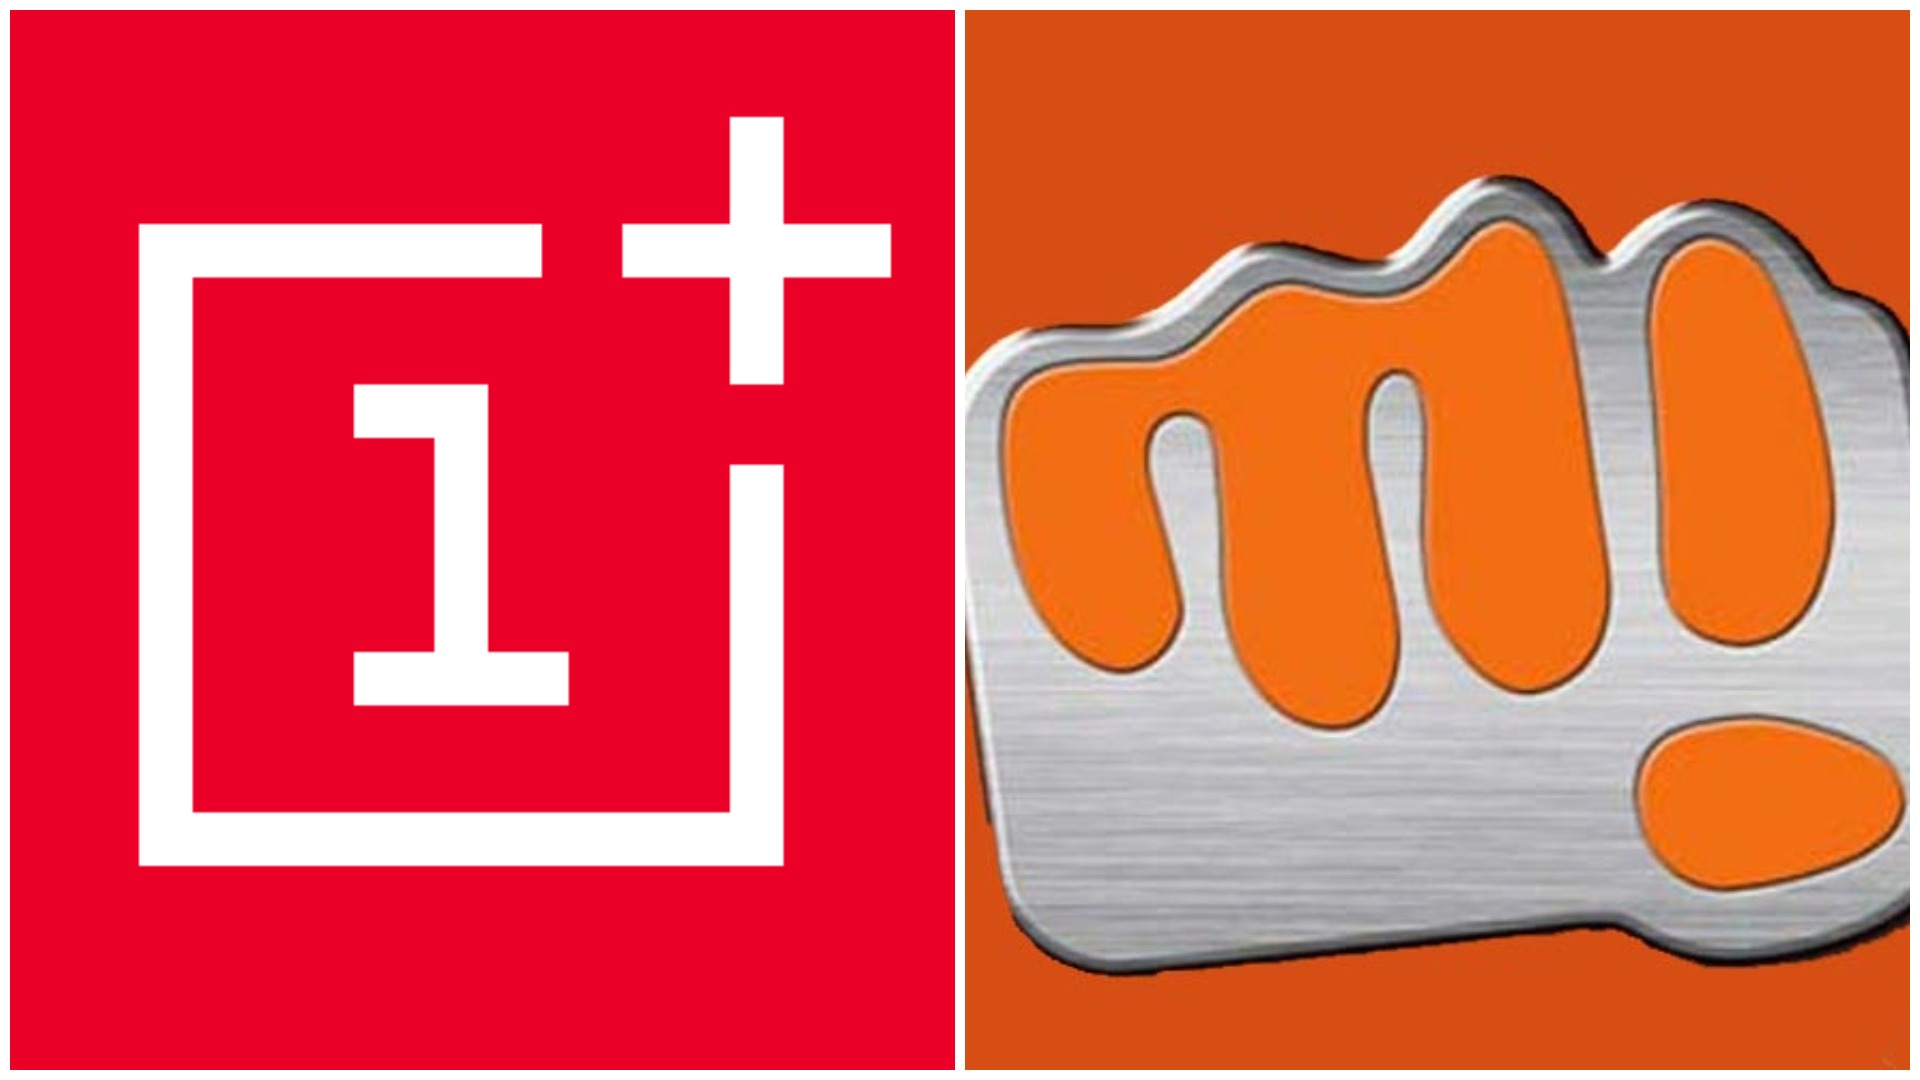 micromax_oneplus_ispyprice_logo